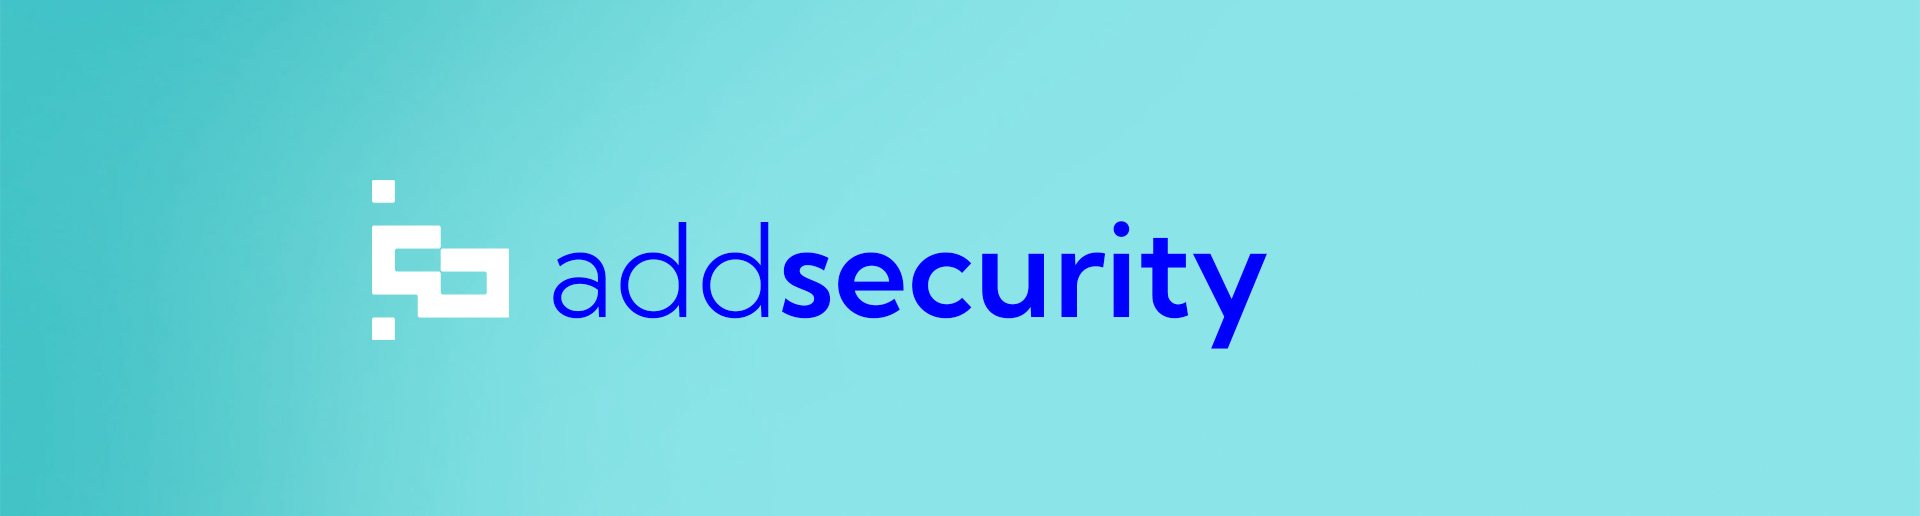 Addsecurity.